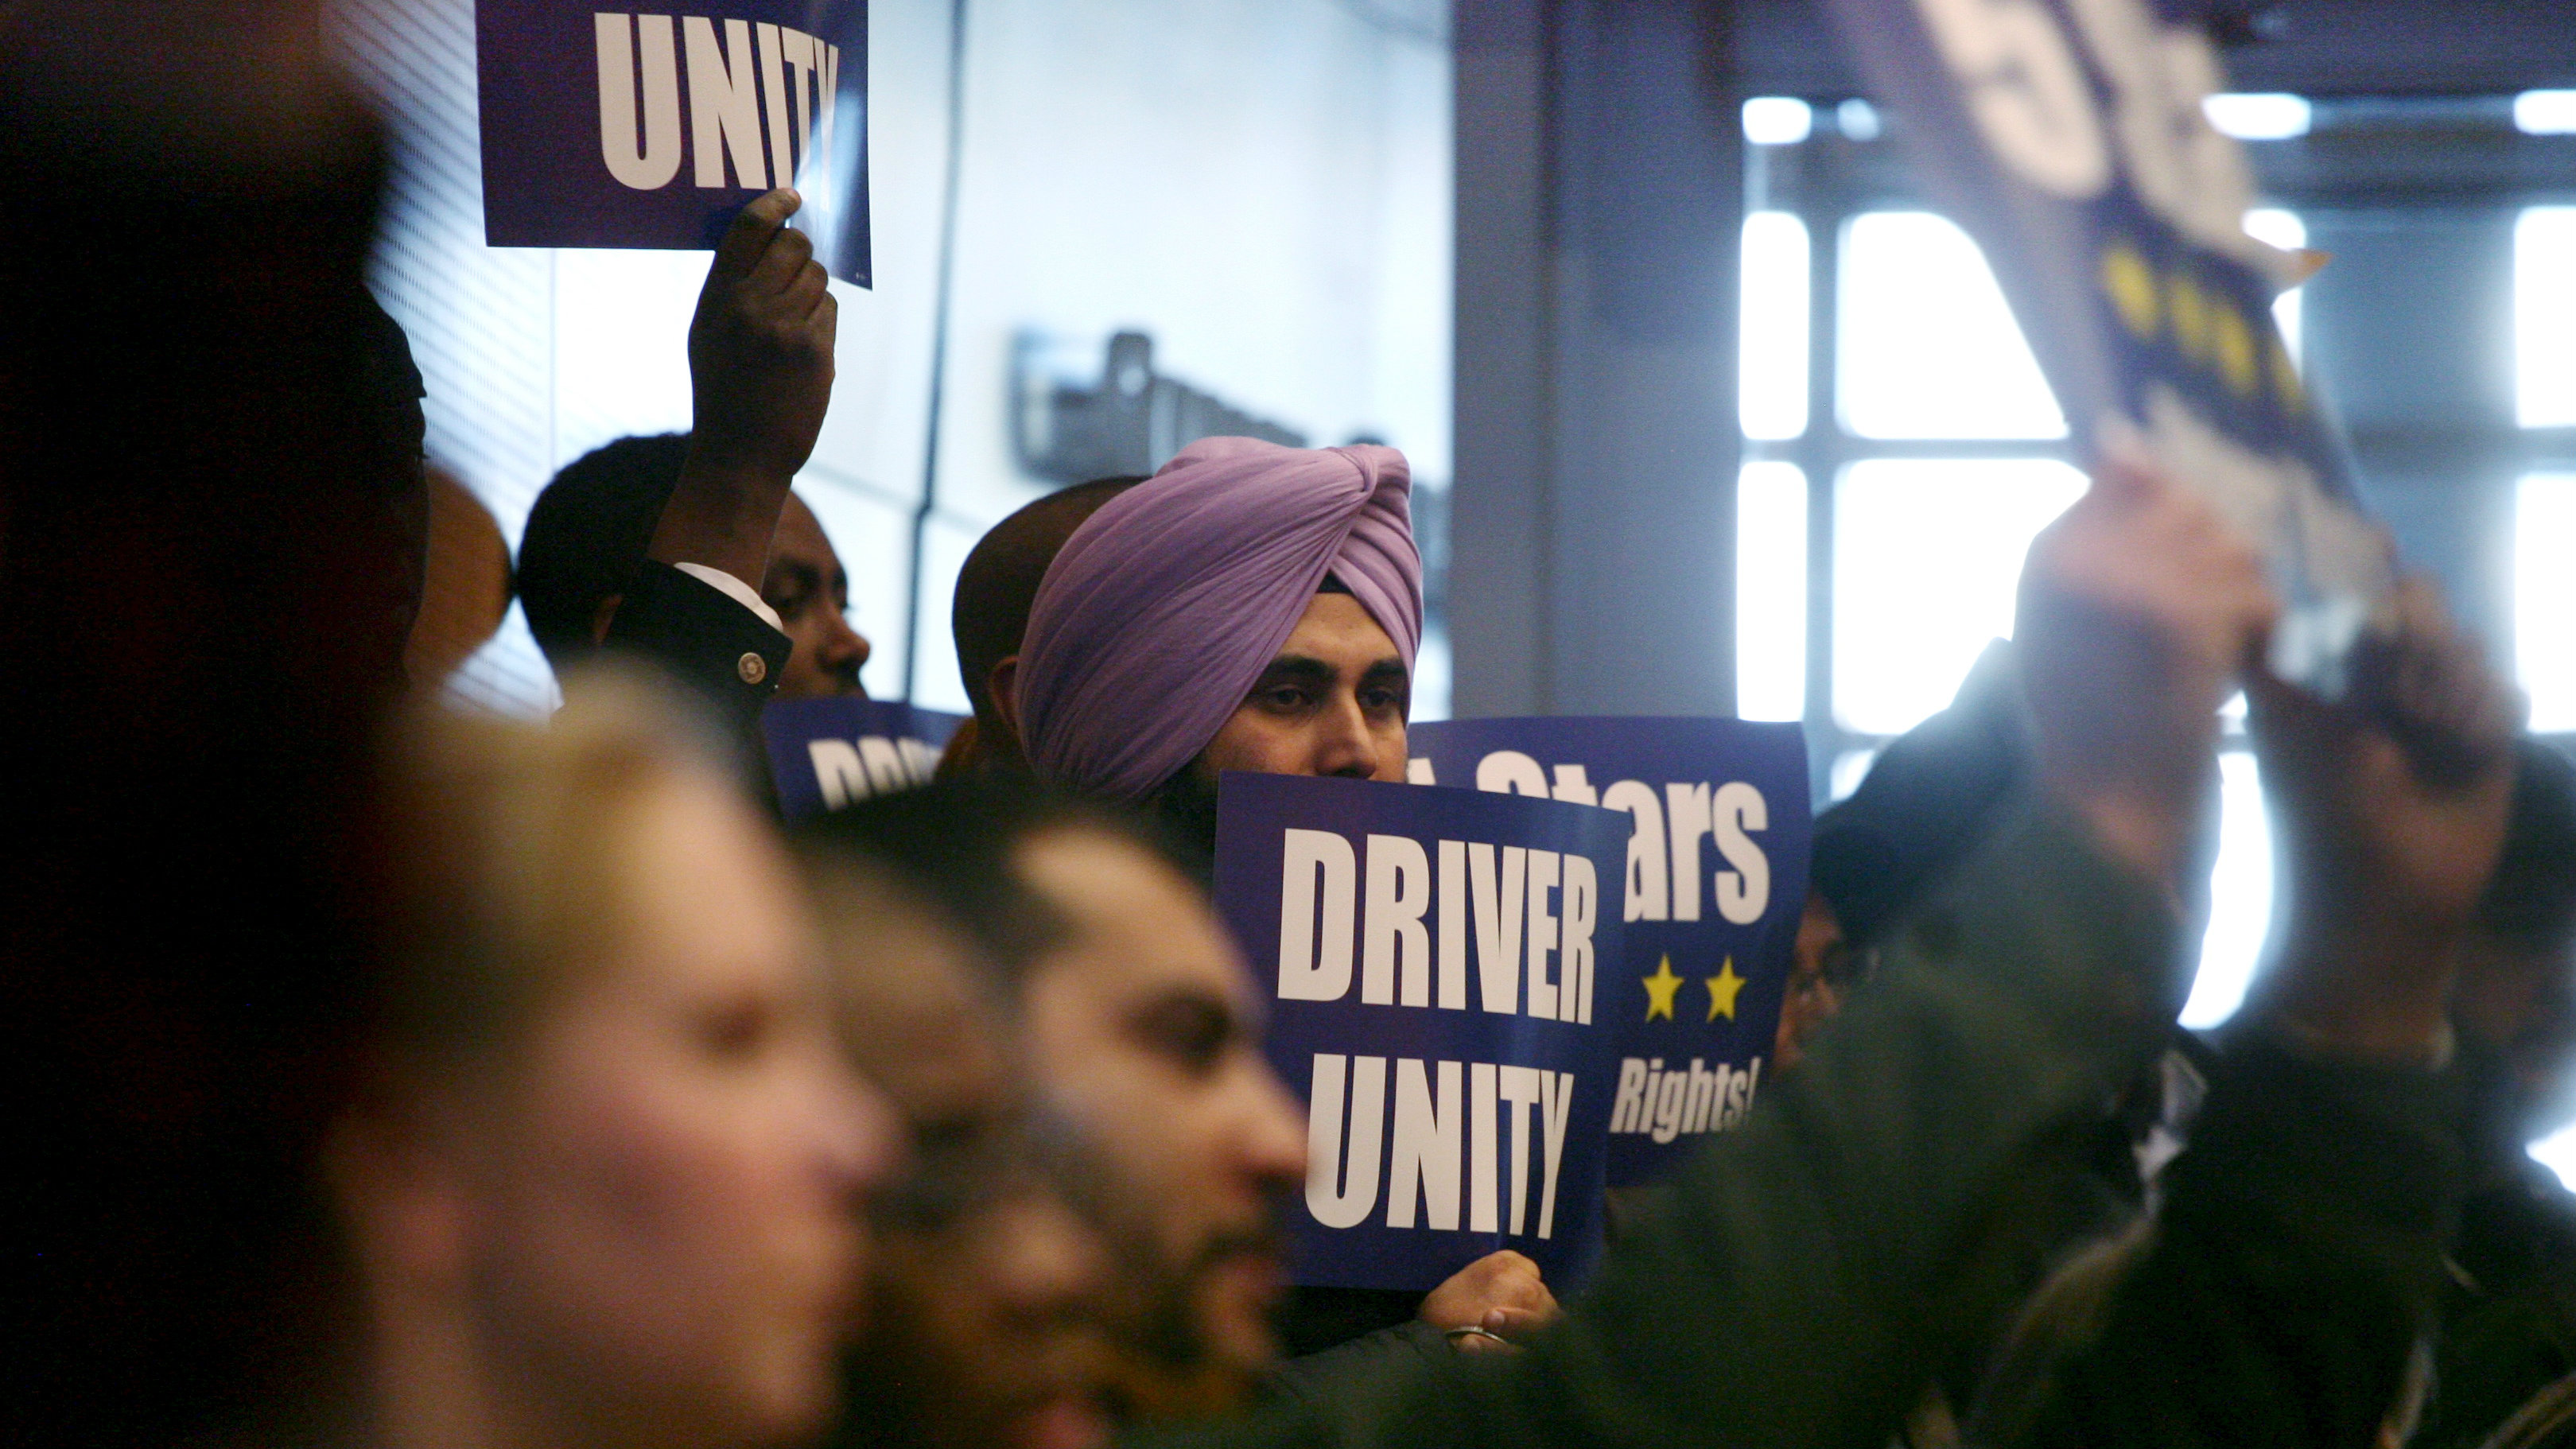 Supporters of ride share unionization is seen cheering at a meeting when the Seattle City Council voted to approve a measure that would allow ride sharing drivers for Uber and Lyft to unionize in Seattle, Washington, December 14, 2015. REUTERS/Matt Mills McKnight